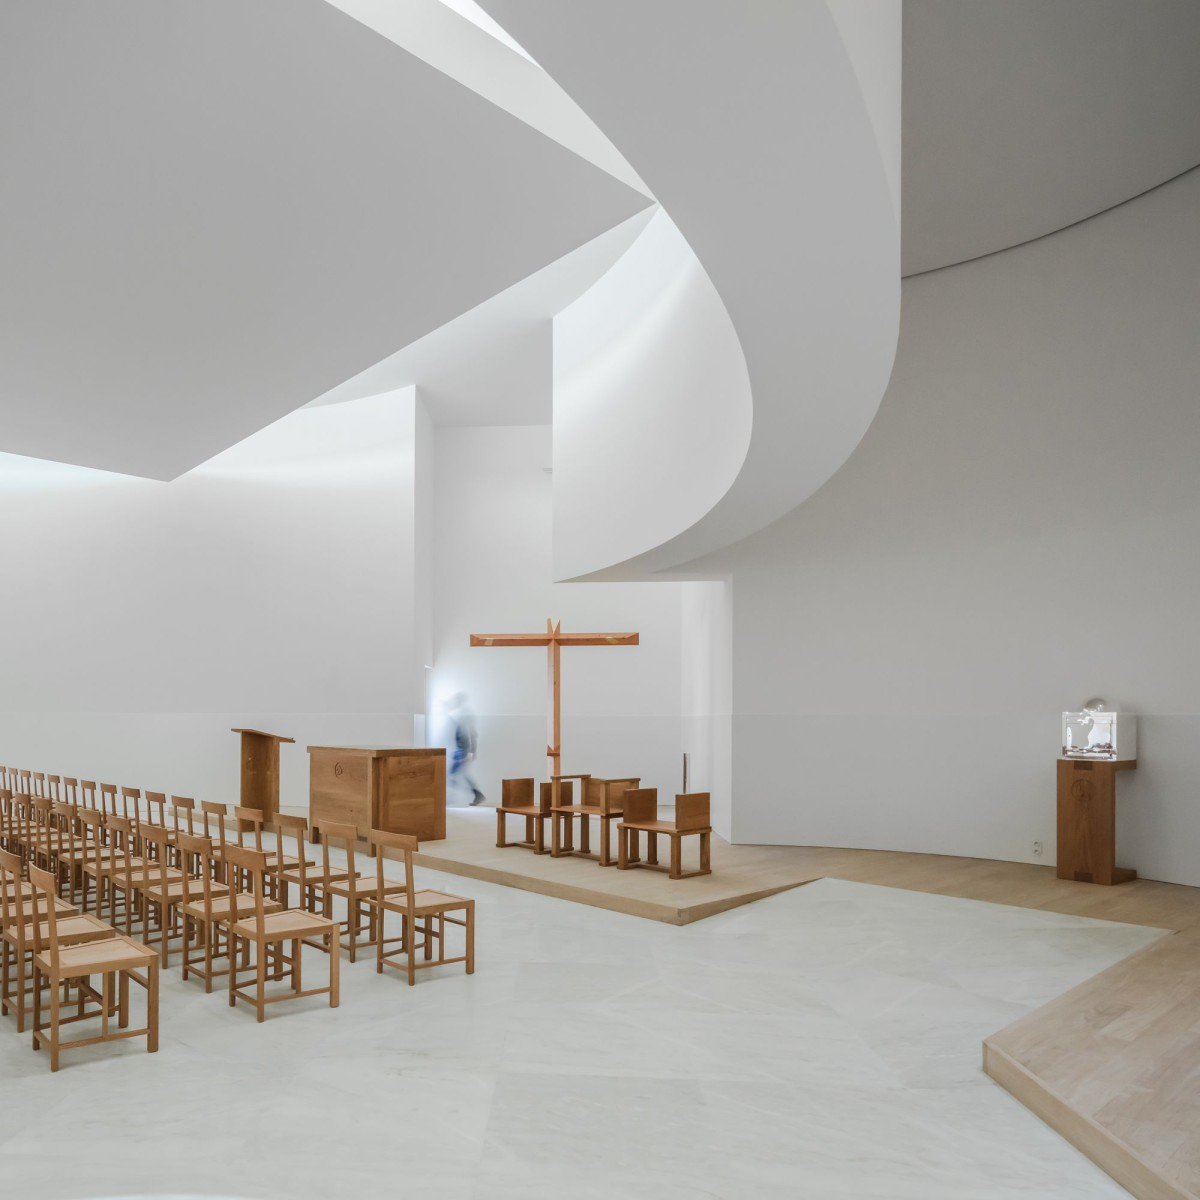 Alvaro Siza . Church of Saint-Jacques de la Lande . Rennes (41)